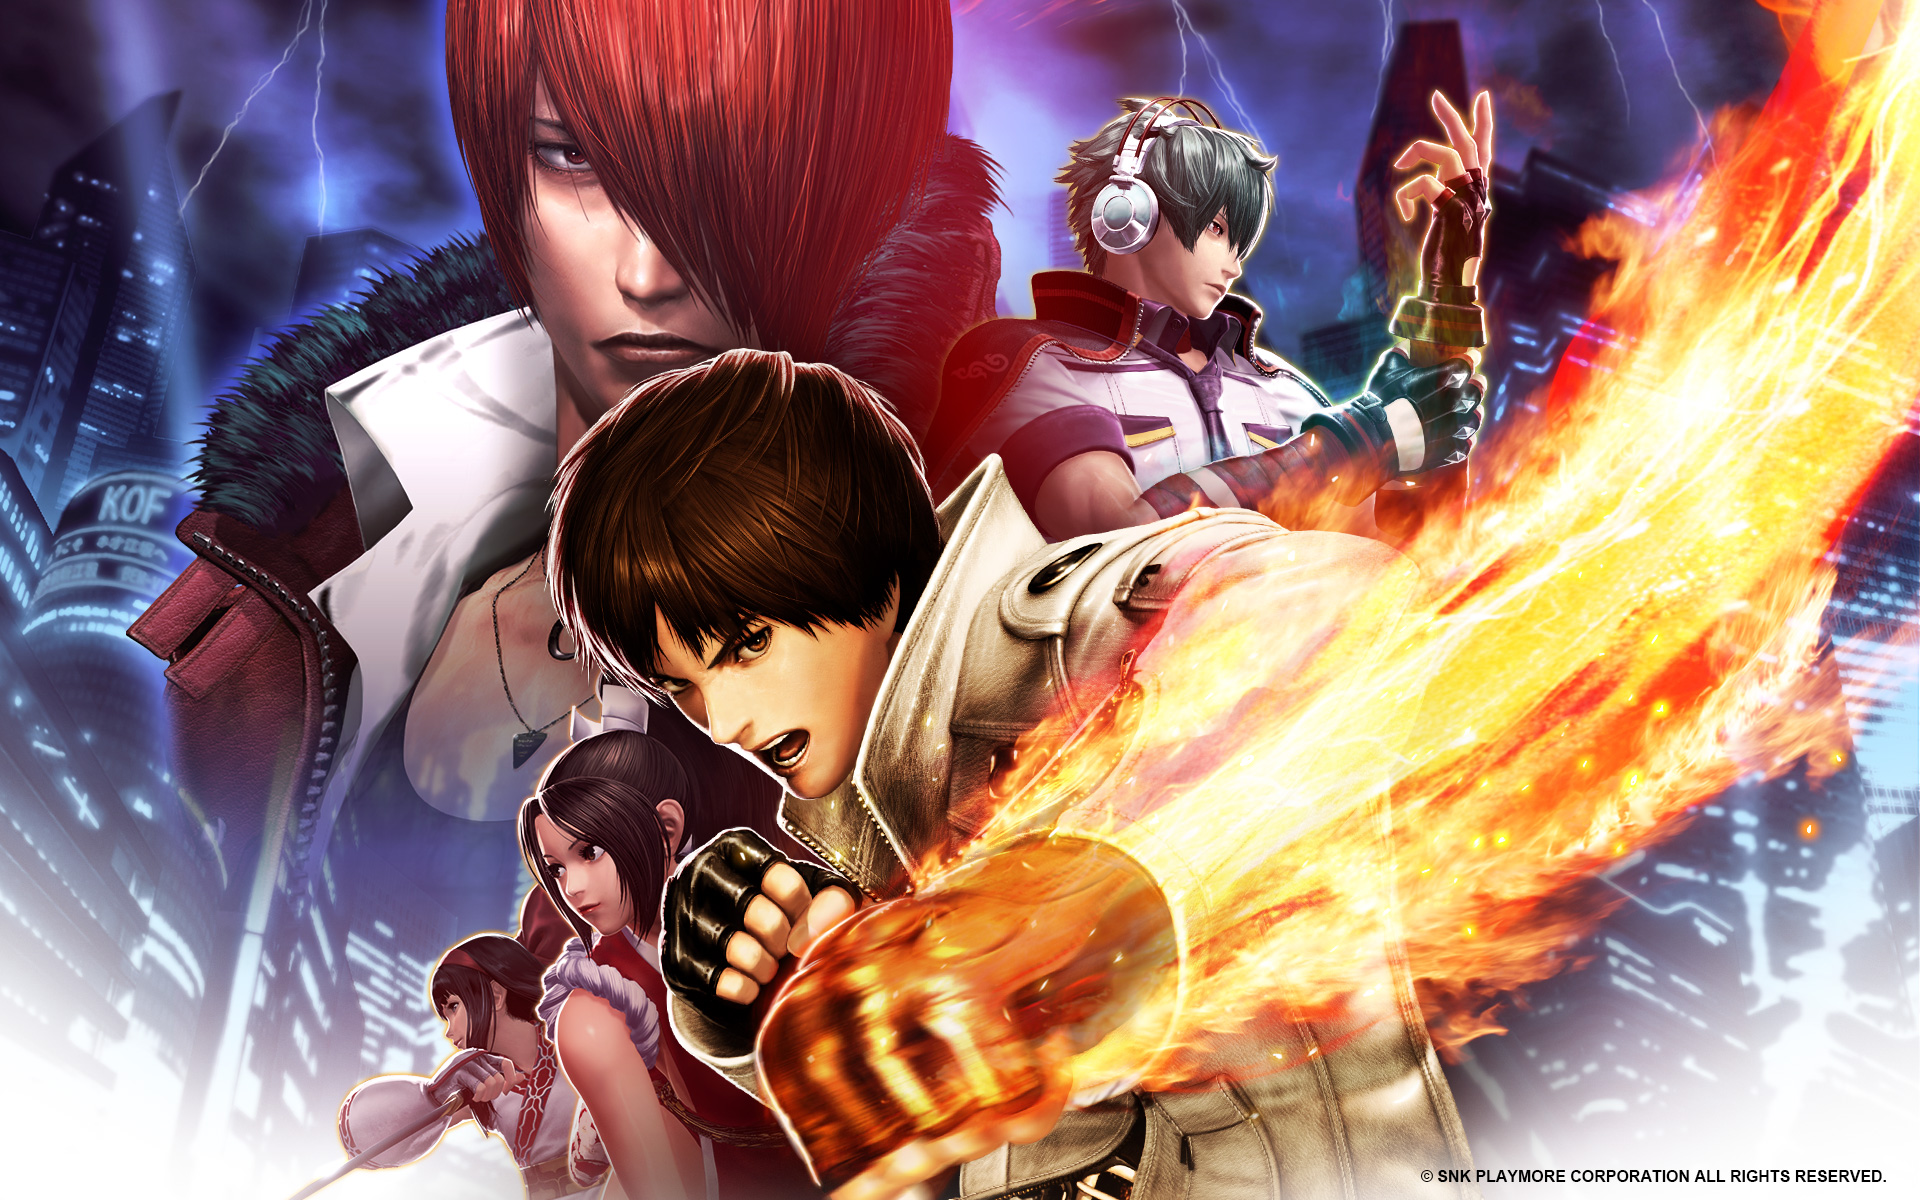 Come scaricare The King of Fighters per Android e Blackberry 4